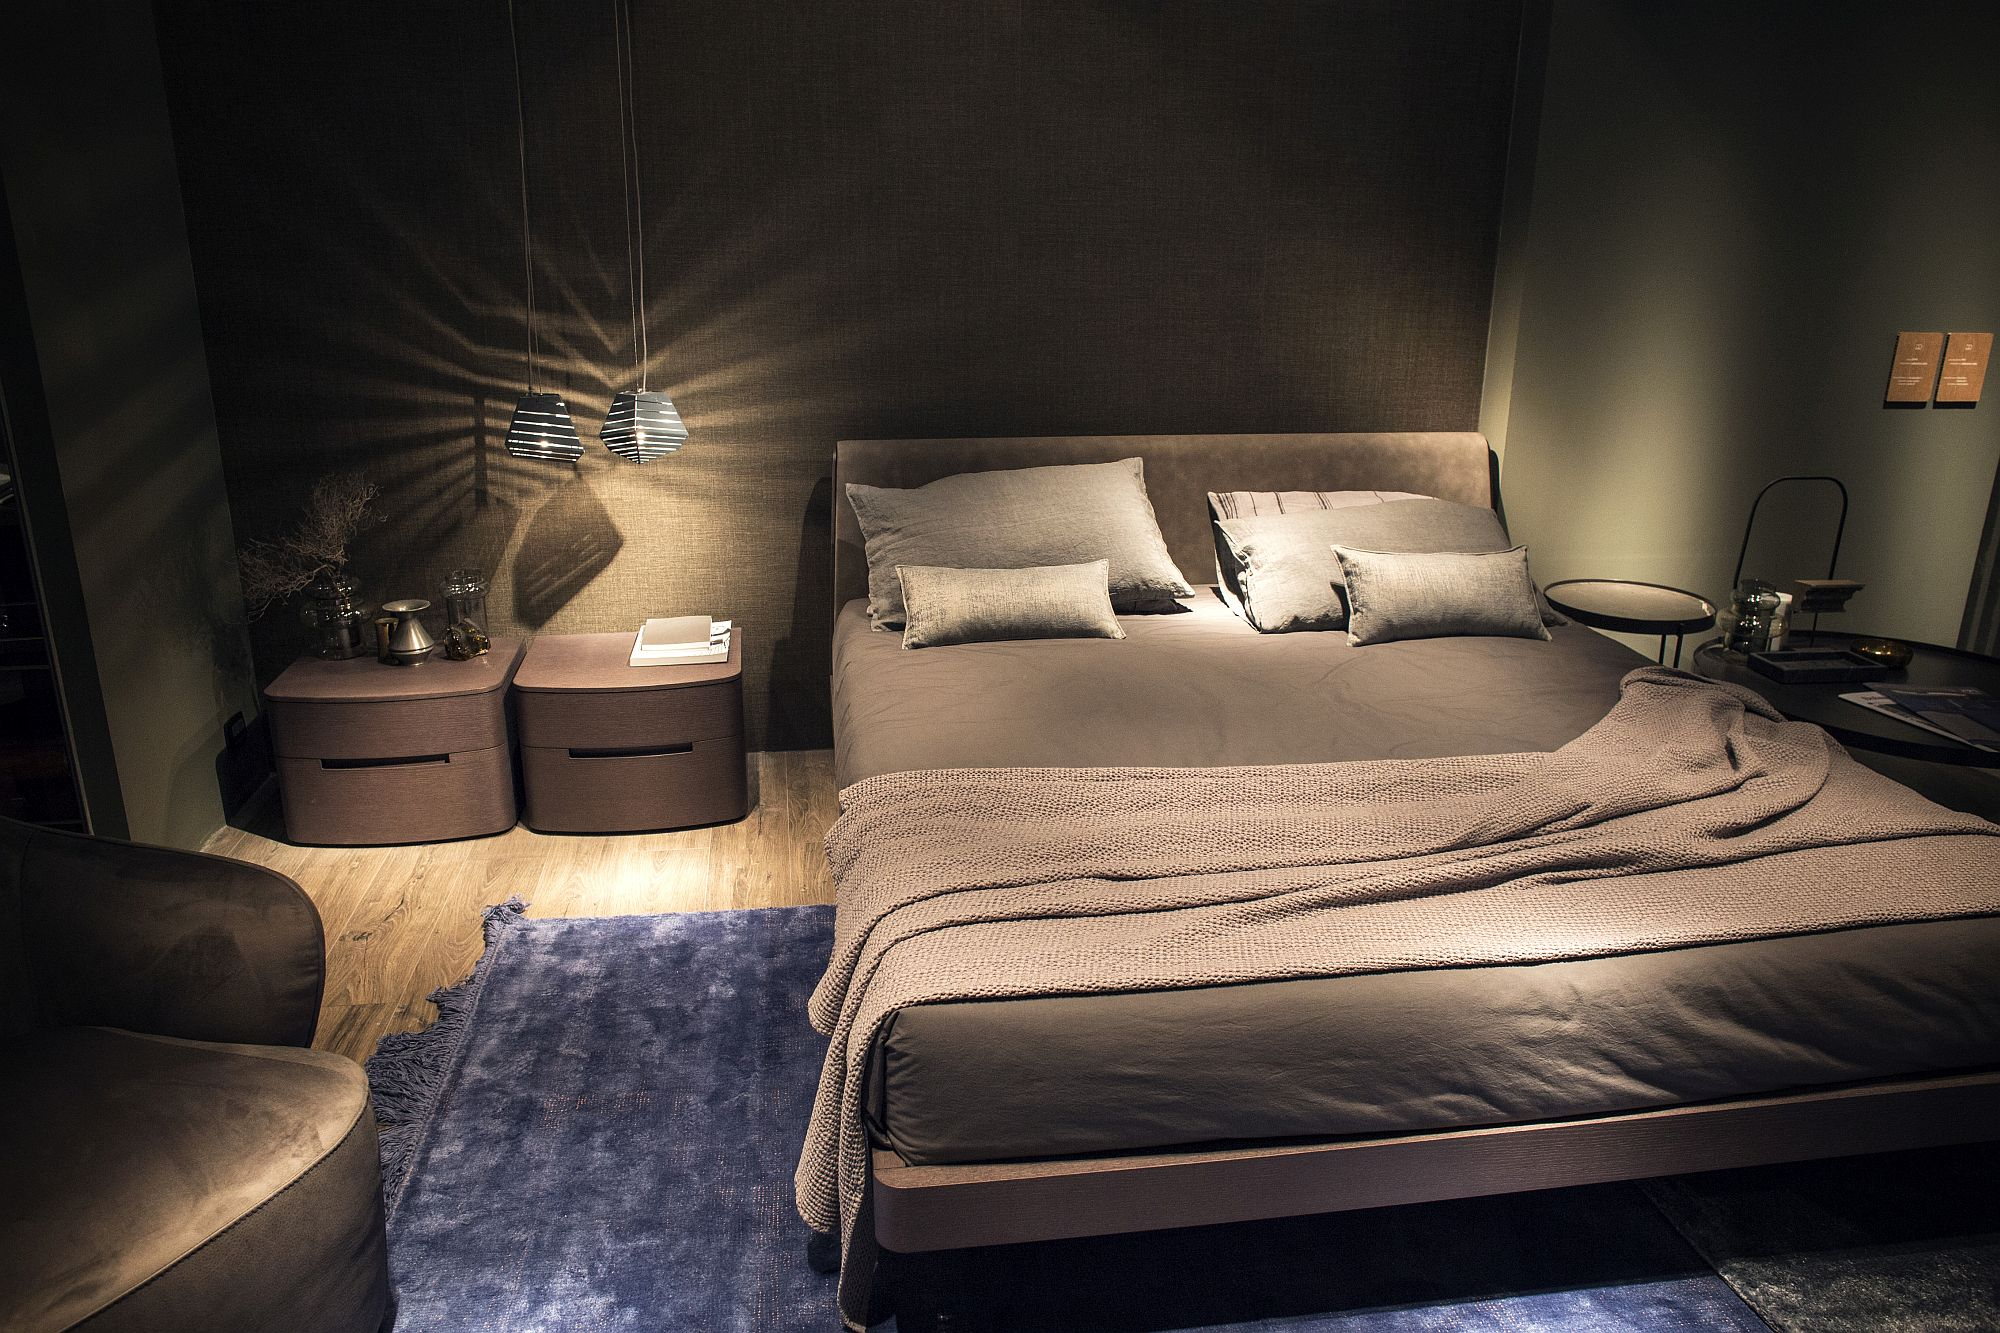 Bedside pendants free up space while providing more even illumination